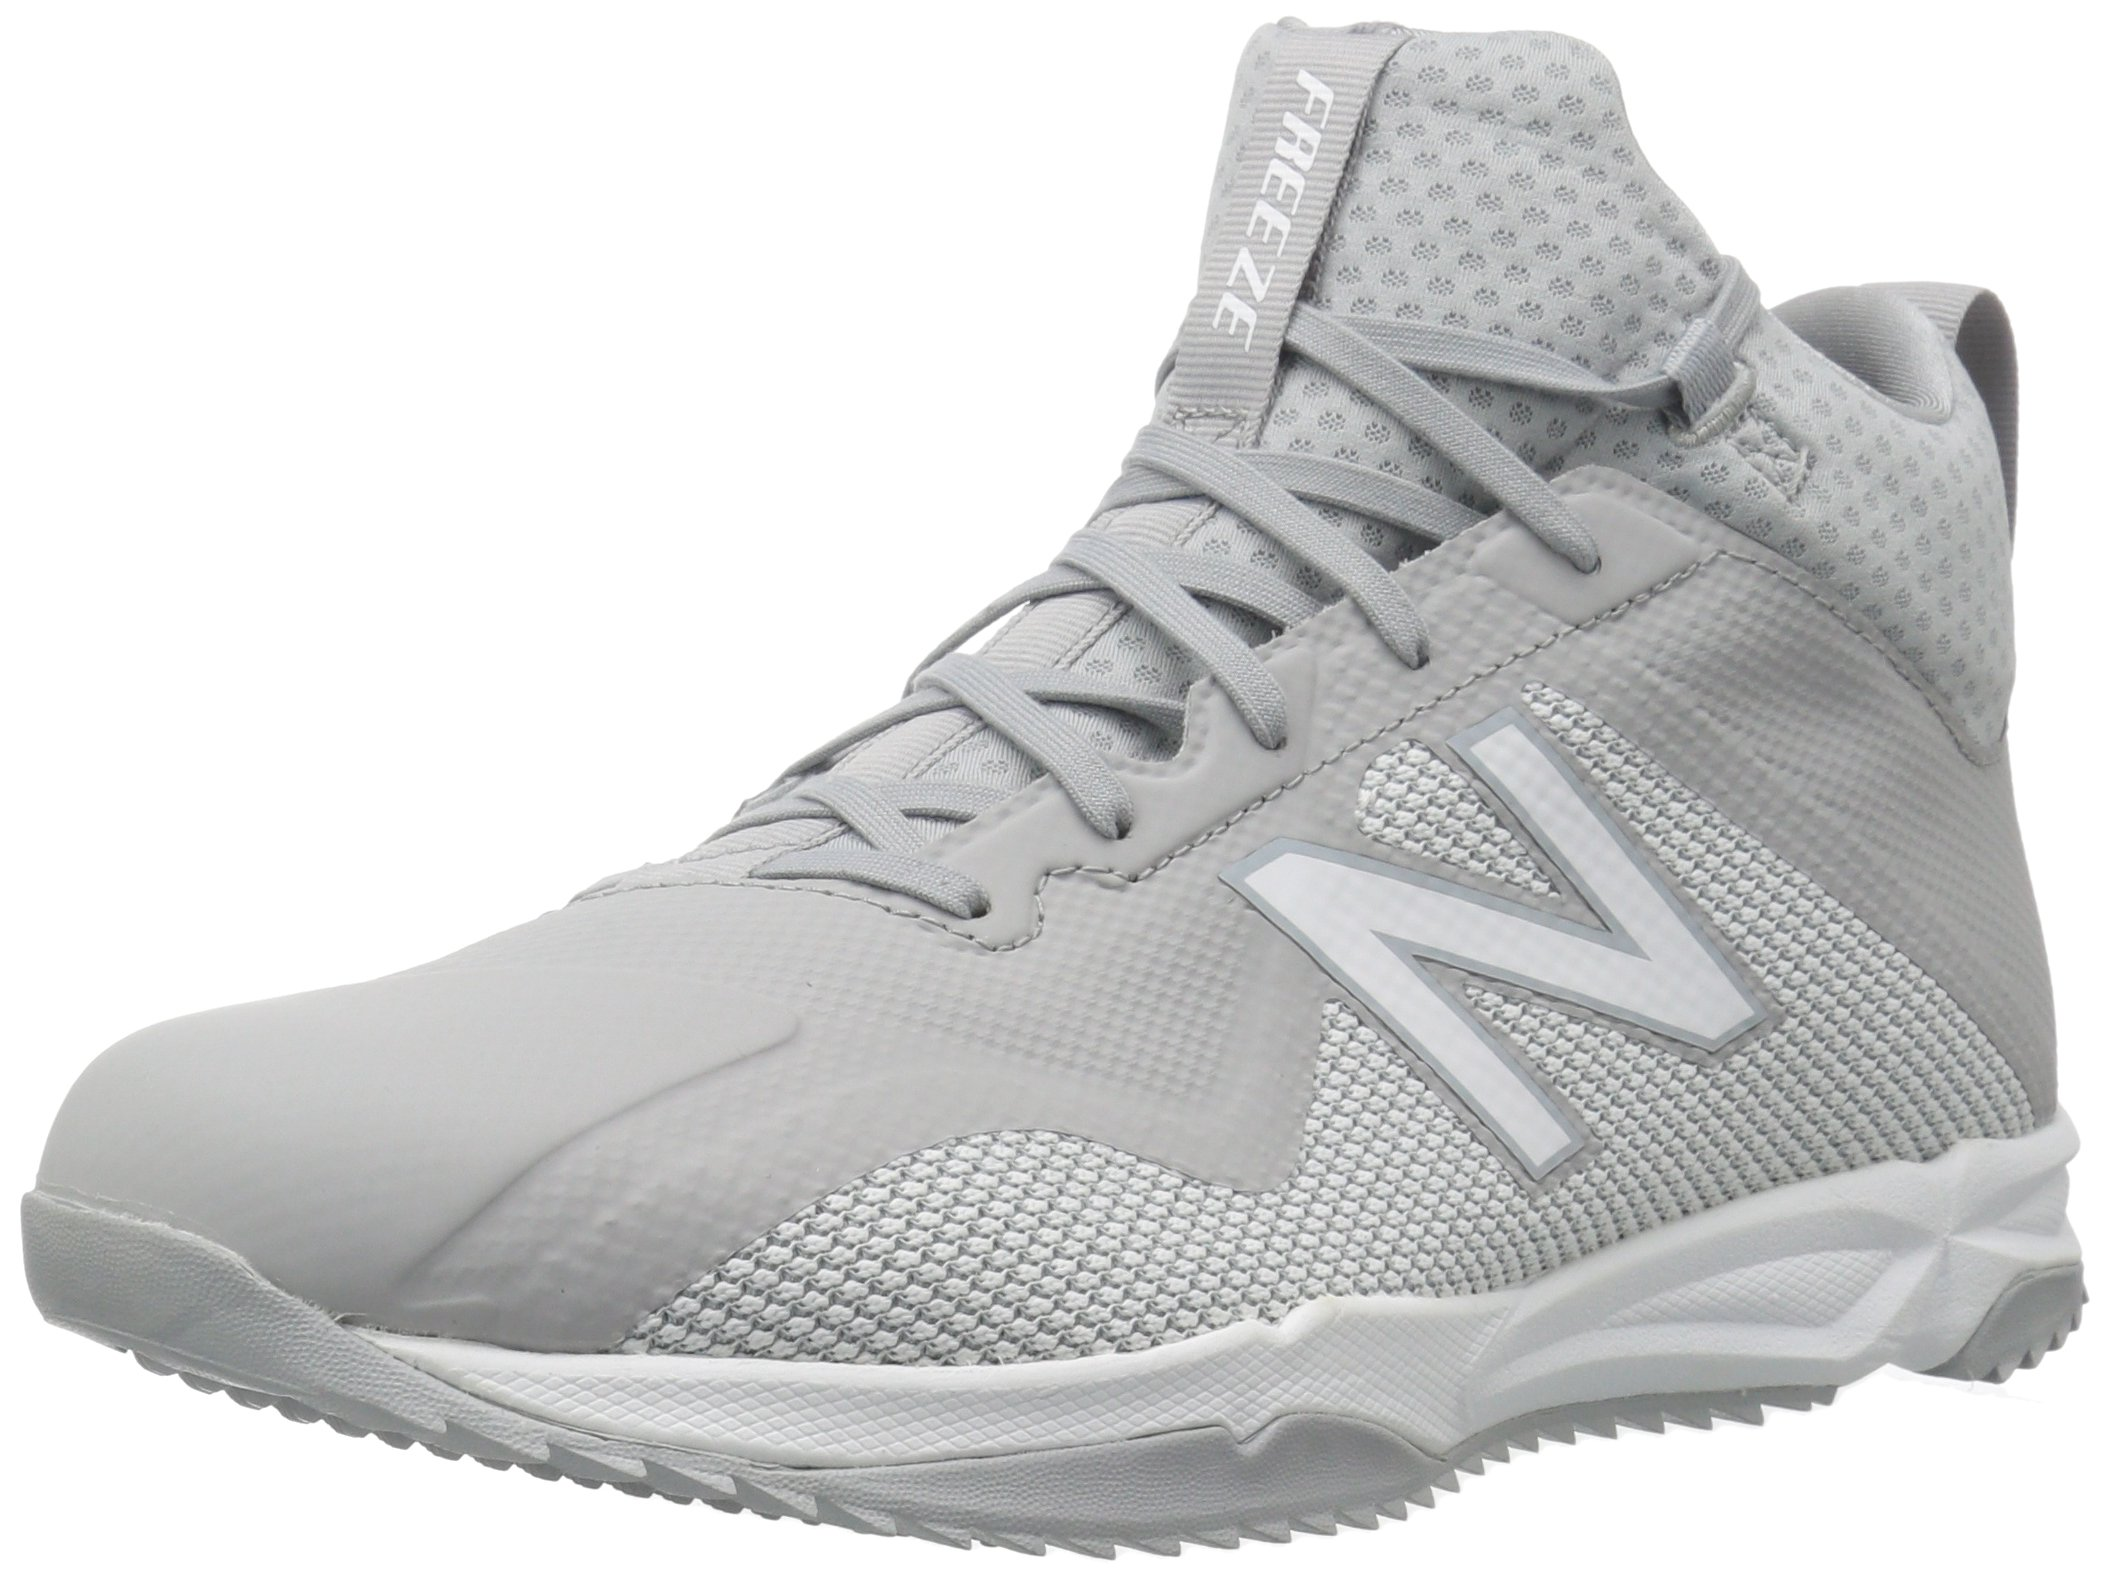 New Balance Men's Freeze v1 Turf Agility Lacrosse Shoe, Grey/White, 14 2E US by New Balance